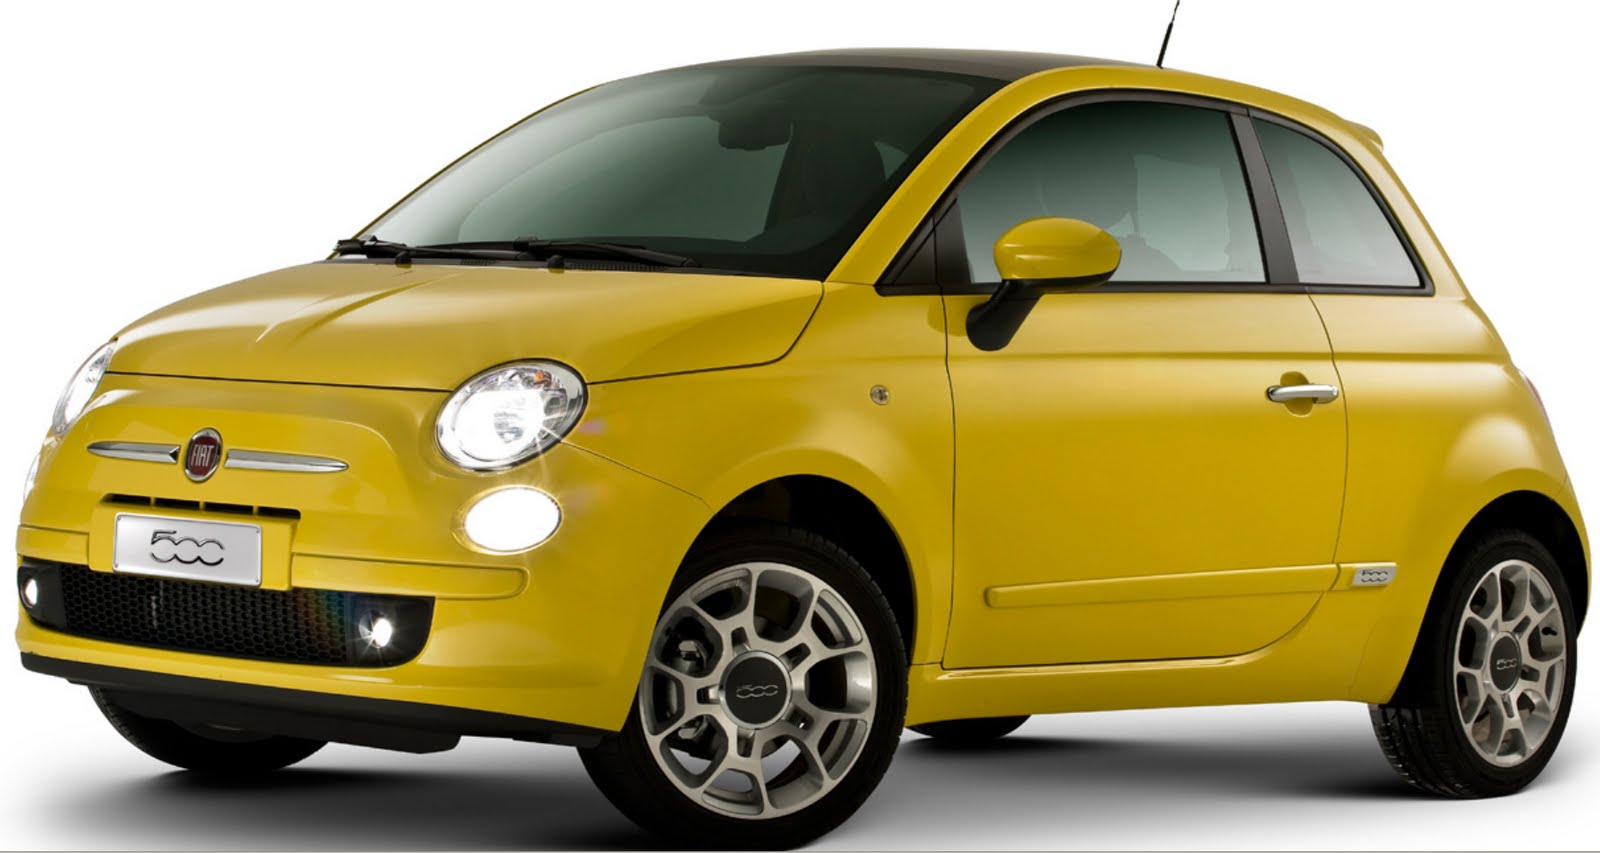 fiat 500 abarth specs 2013 with Fiat 500 News Targeted Market Areas on Fiat 500 Sport likewise Exterior 62681319 moreover Exterior furthermore 2012 Fiat 500 Abarth further Color 20Code.